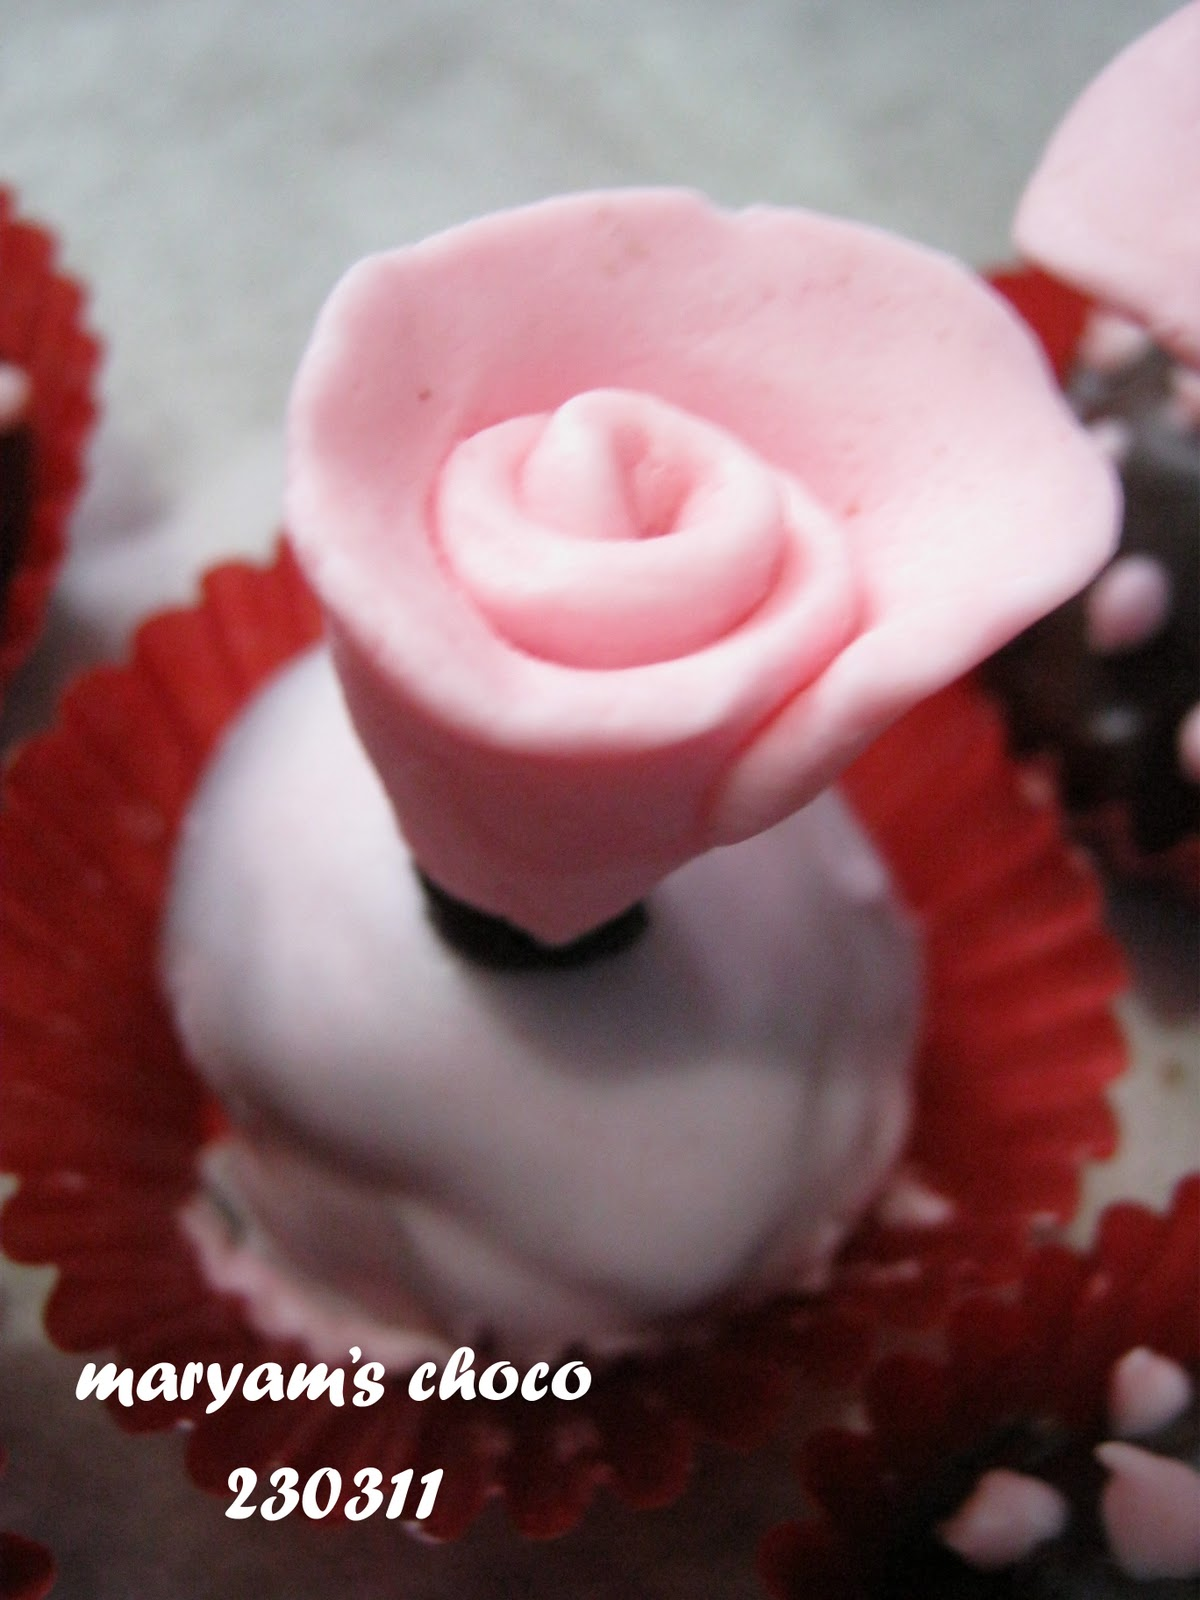 Rose chocoball filling royal jelly